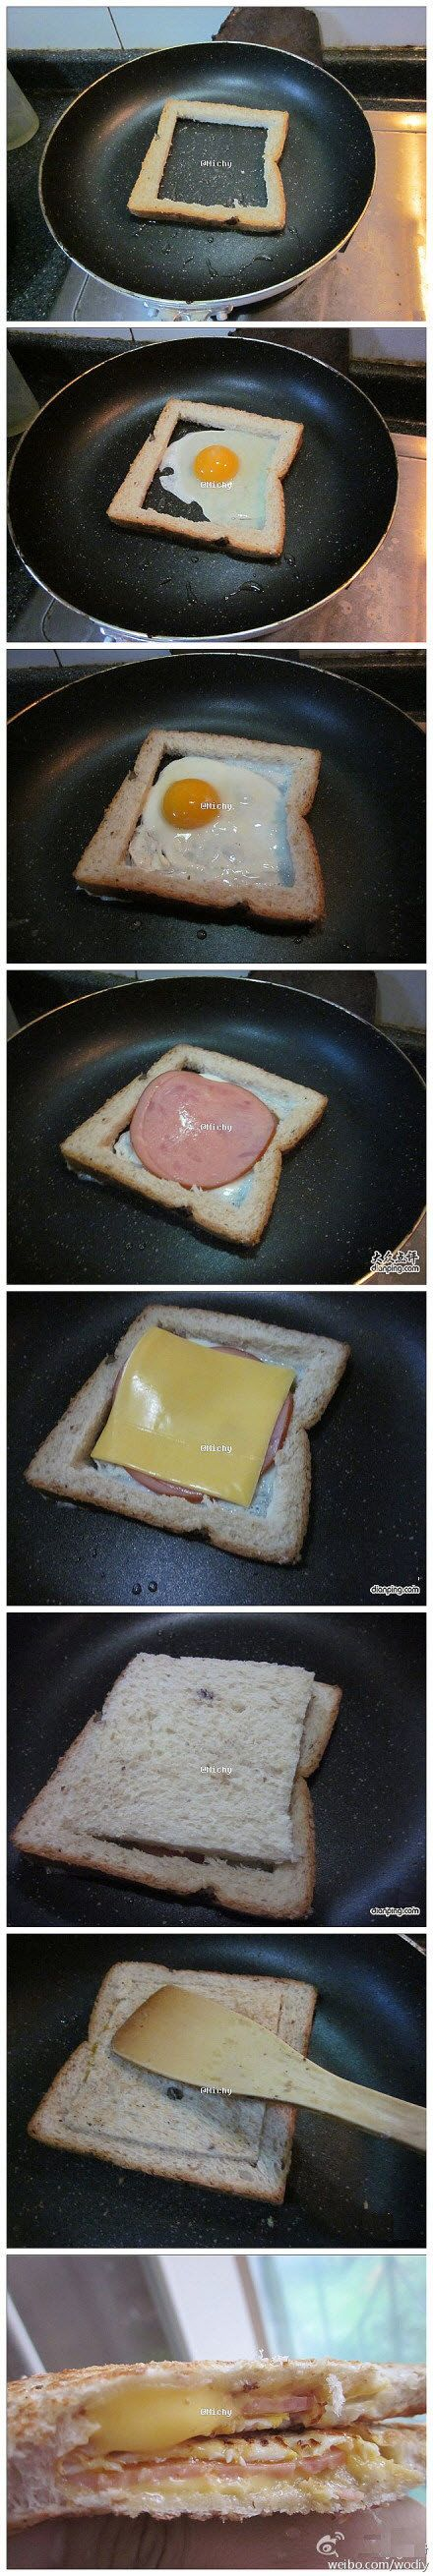 DIY breakfast